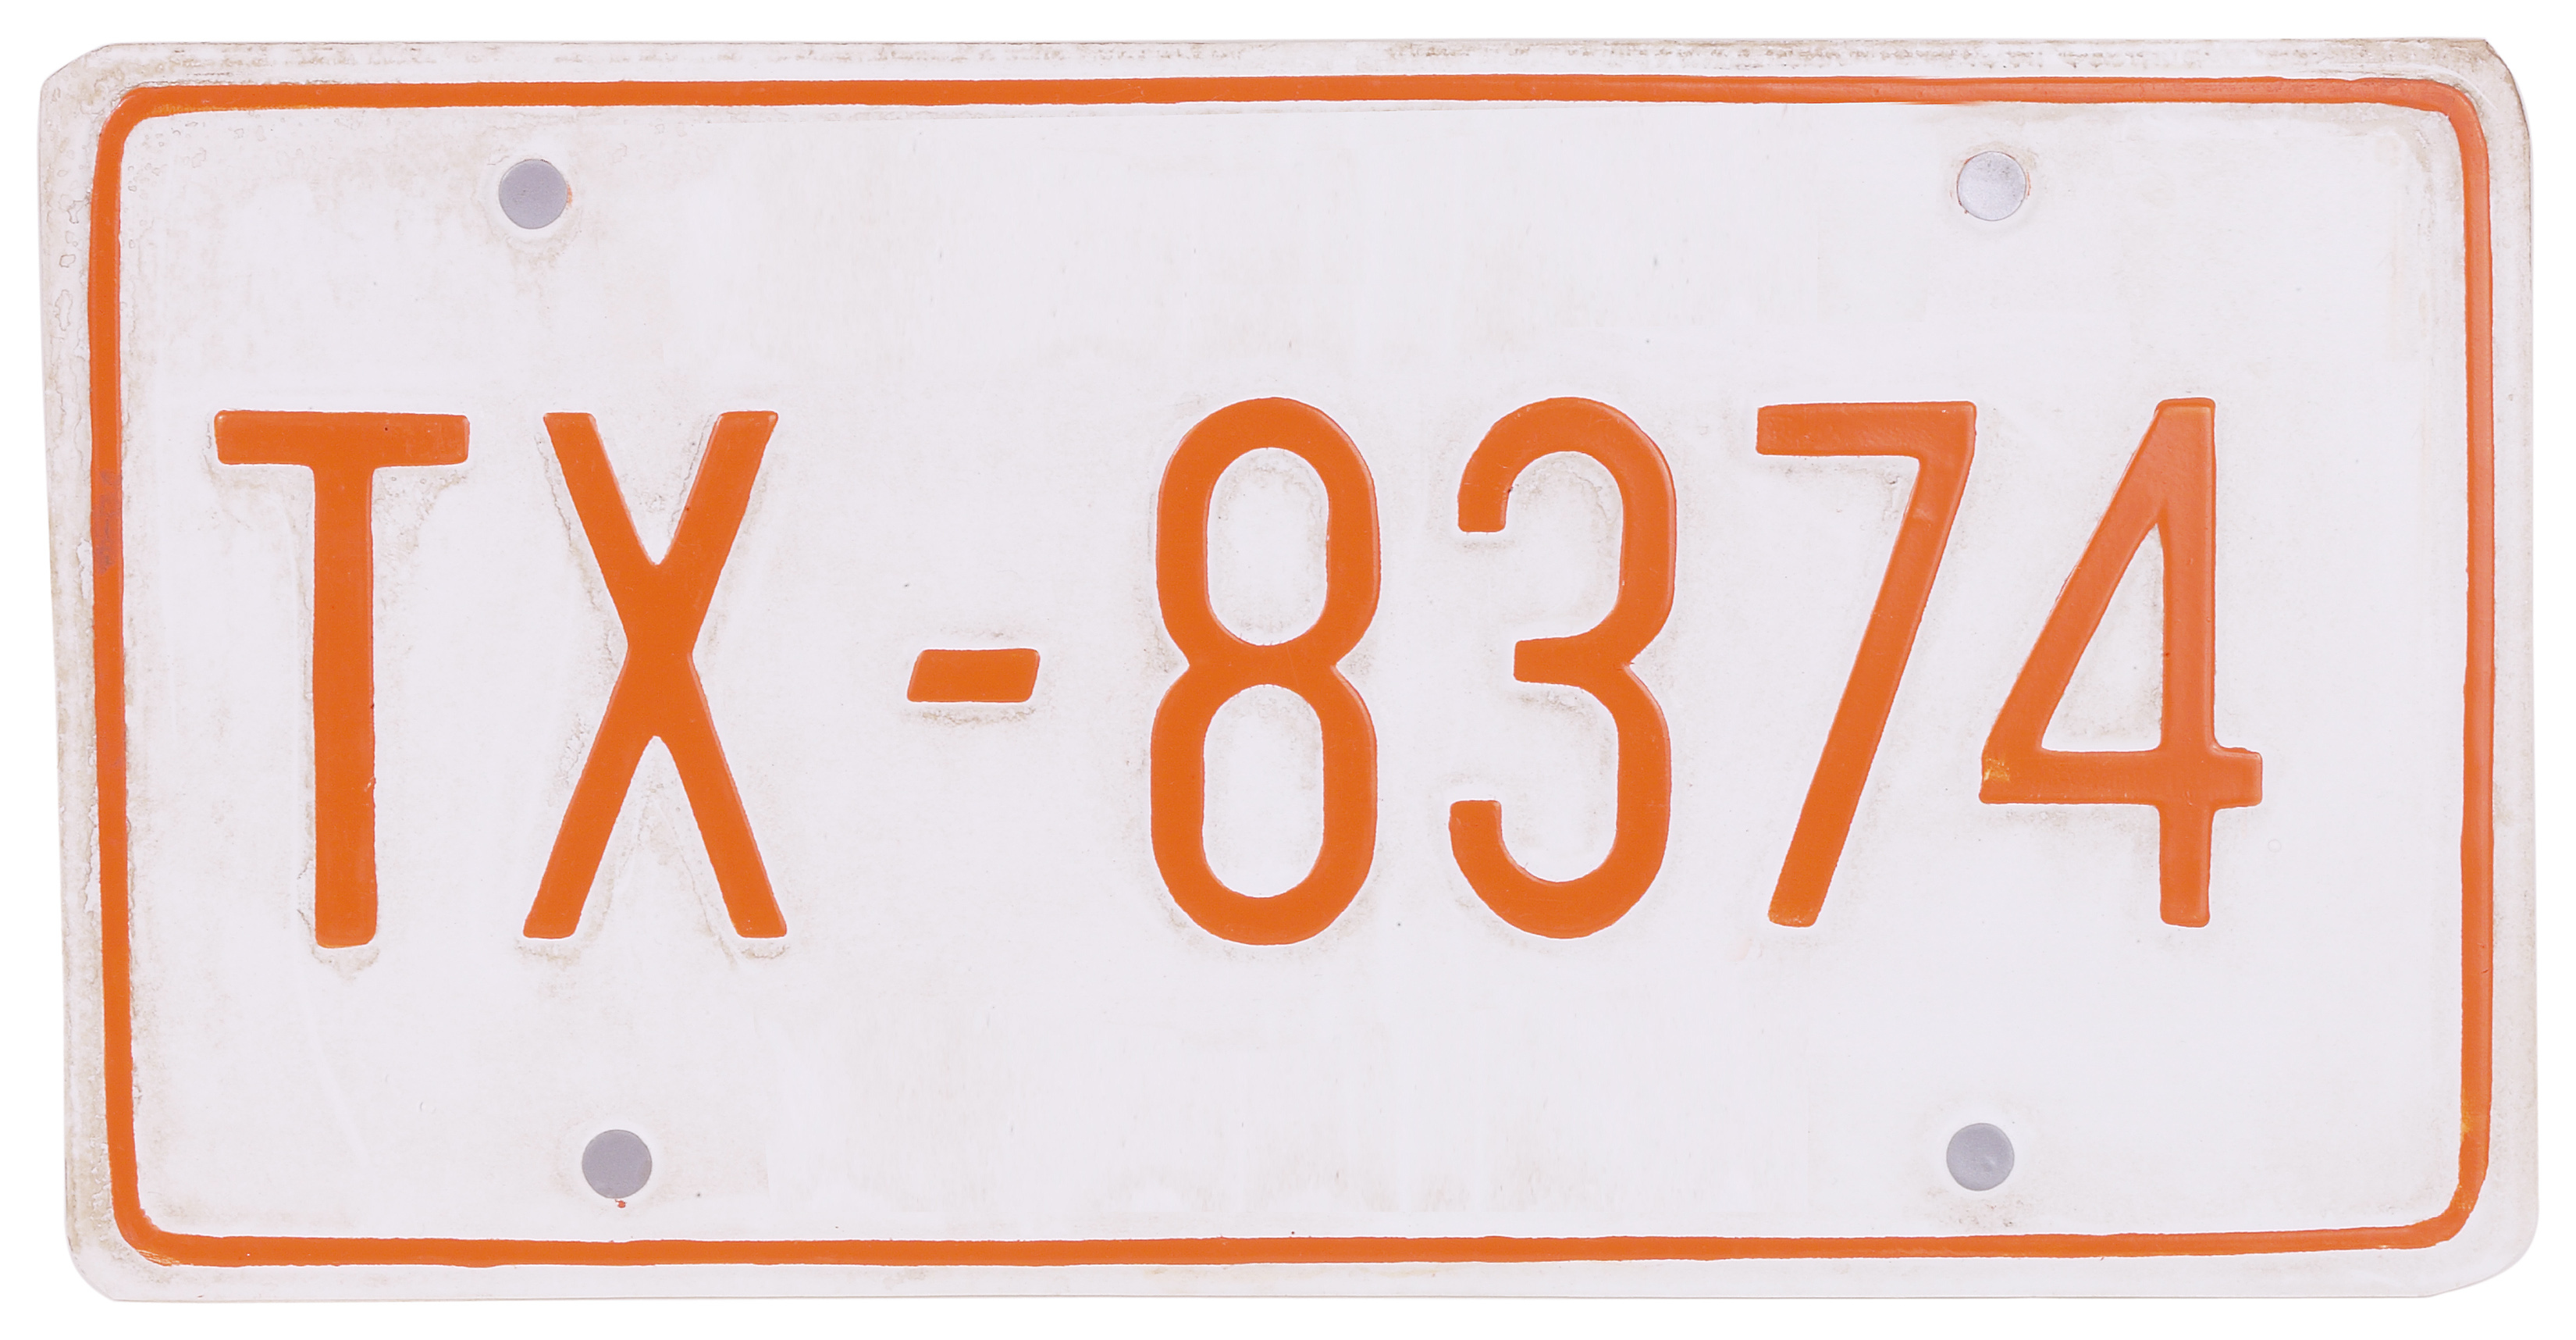 How Do I Renew An Expired Vehicle Registration In Texas